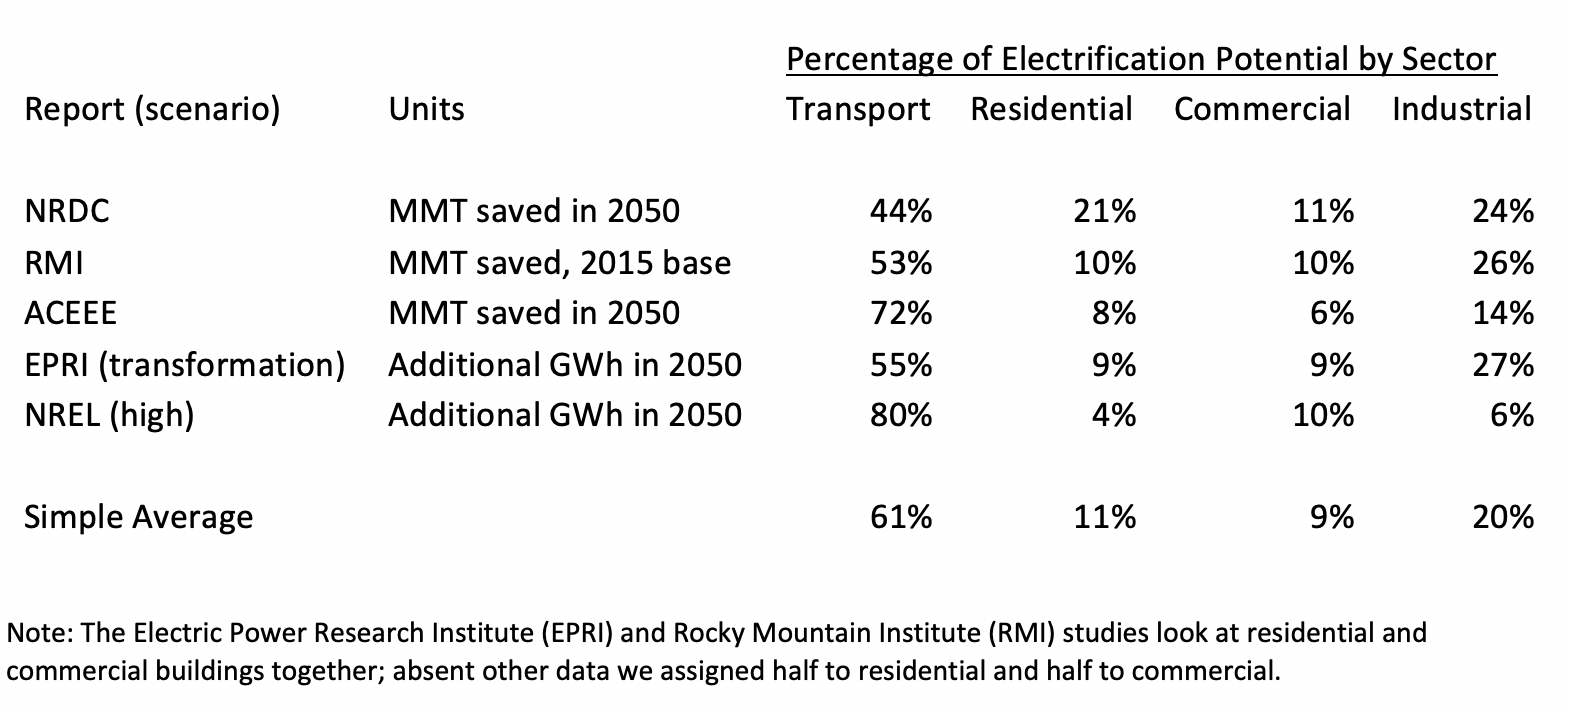 Percentage Electrification Potential By Sector - Table